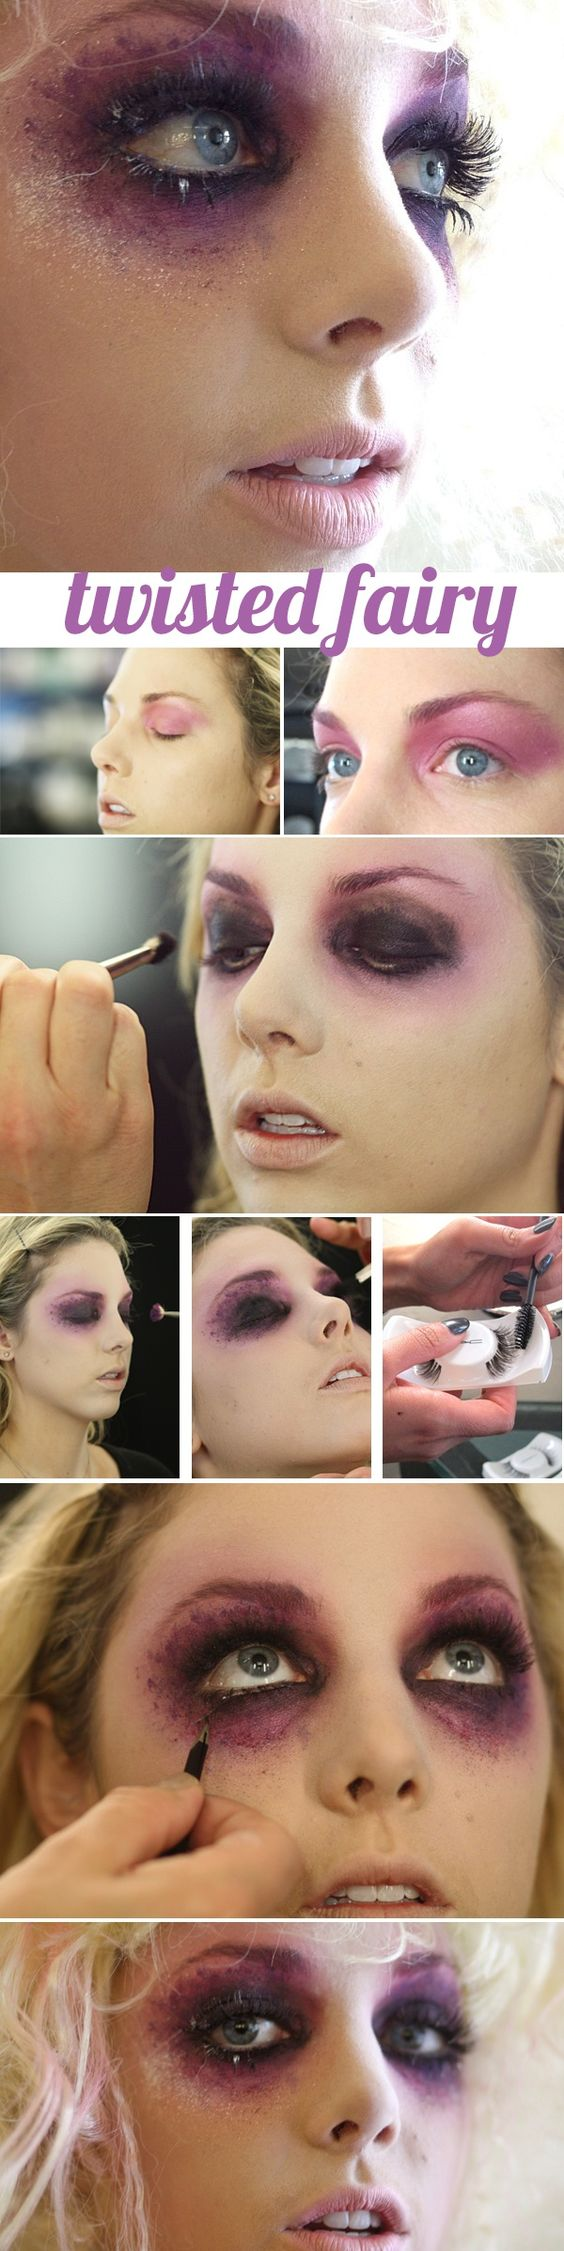 Take your fairy costume to the next level with this twisted fairy makeup tutorial.